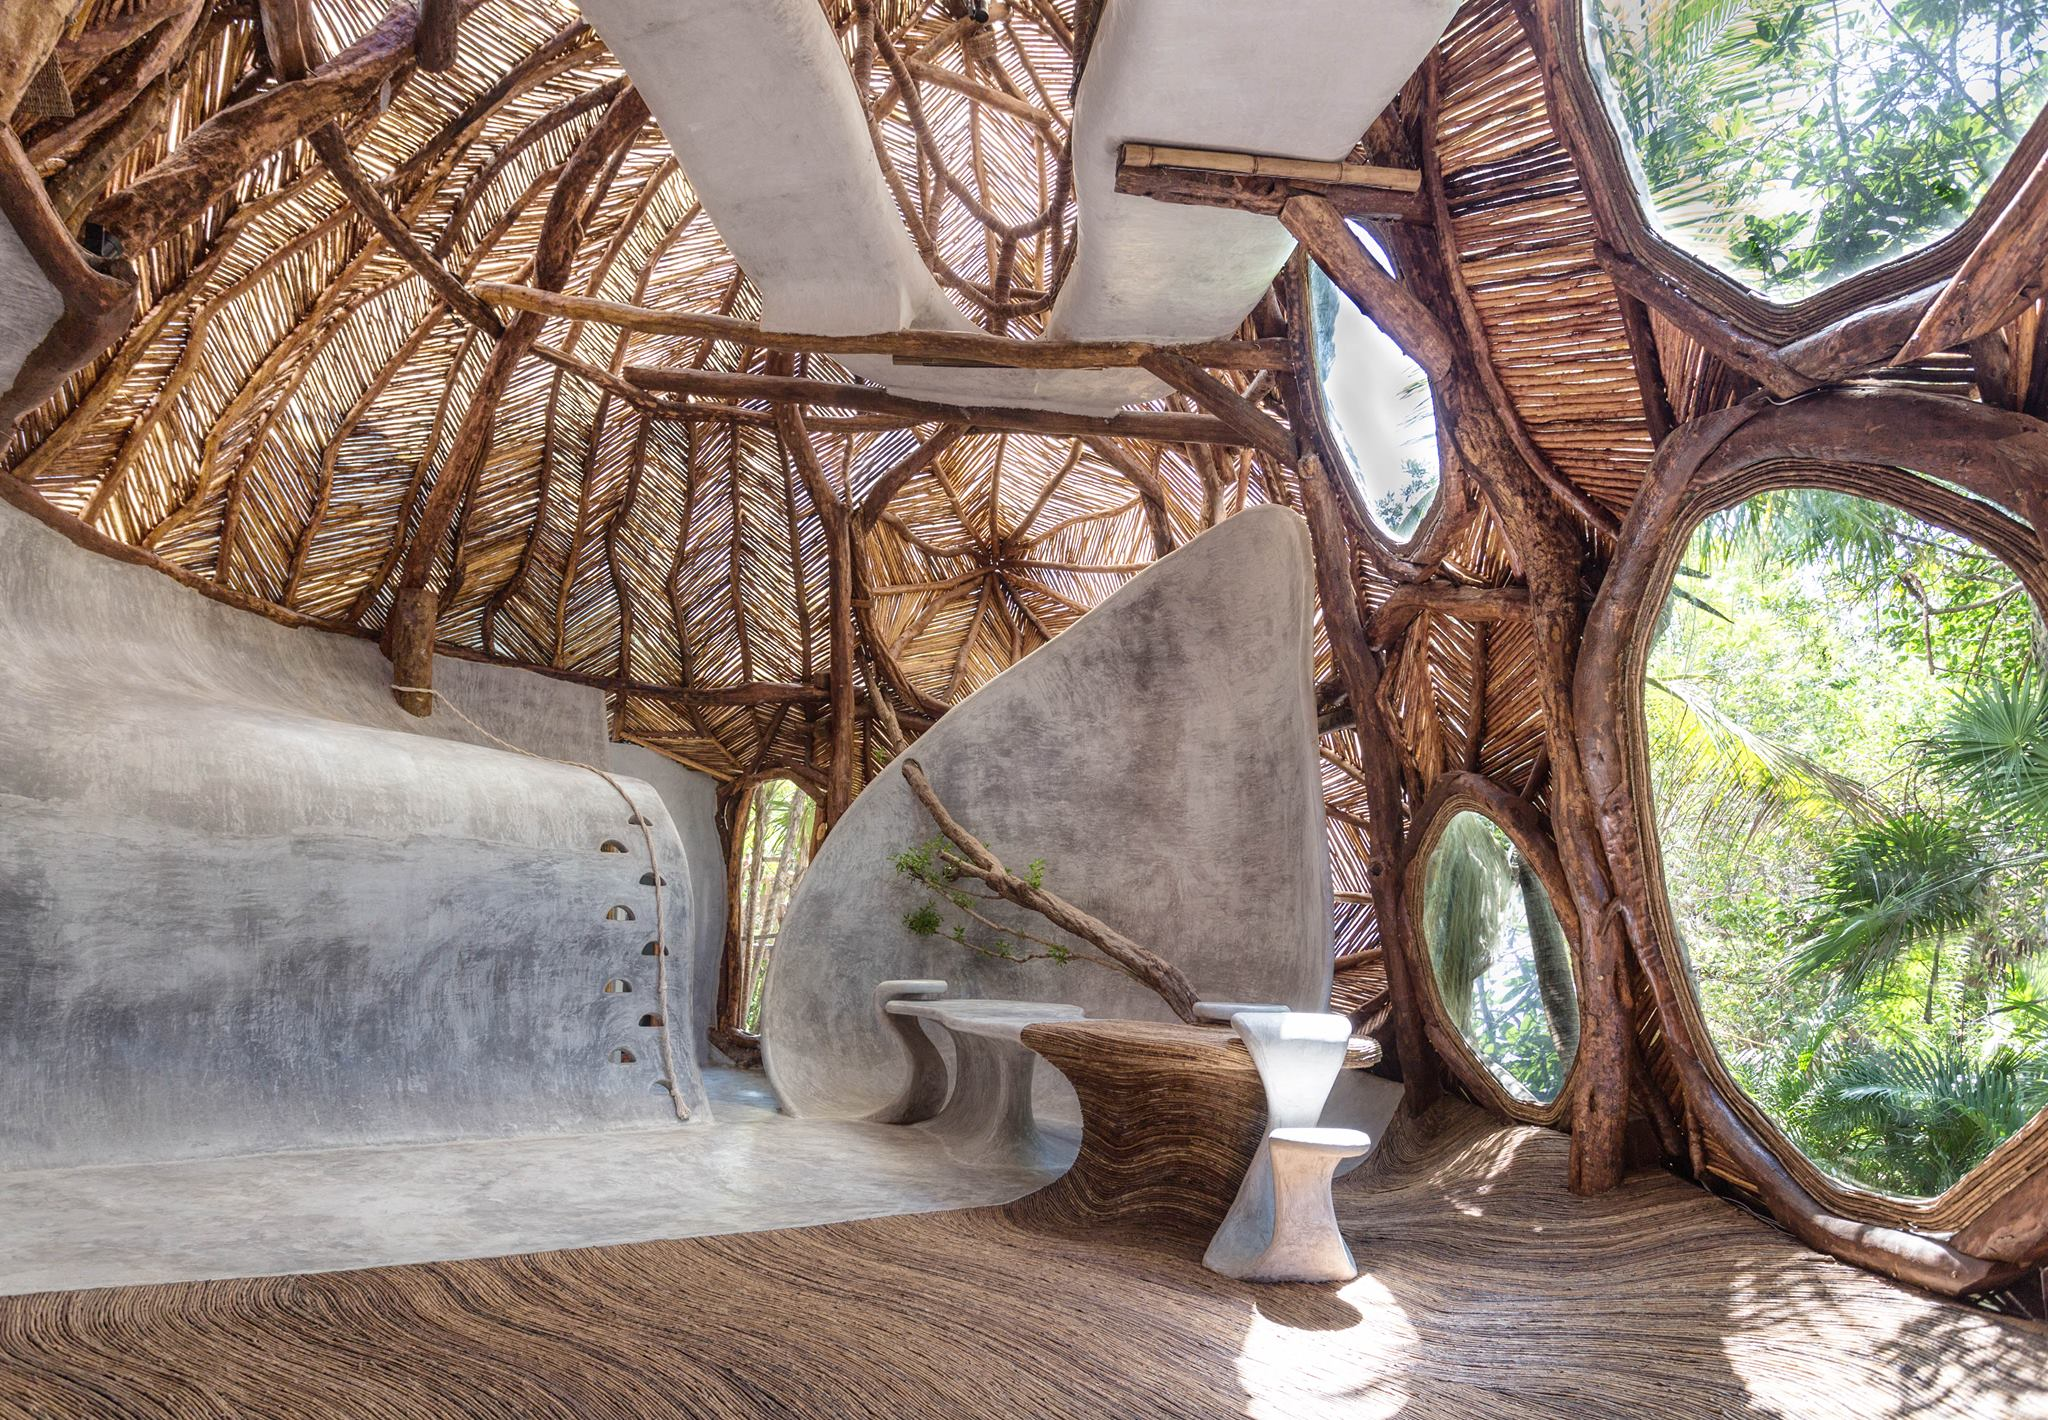 Mexico's art gallery in the trees